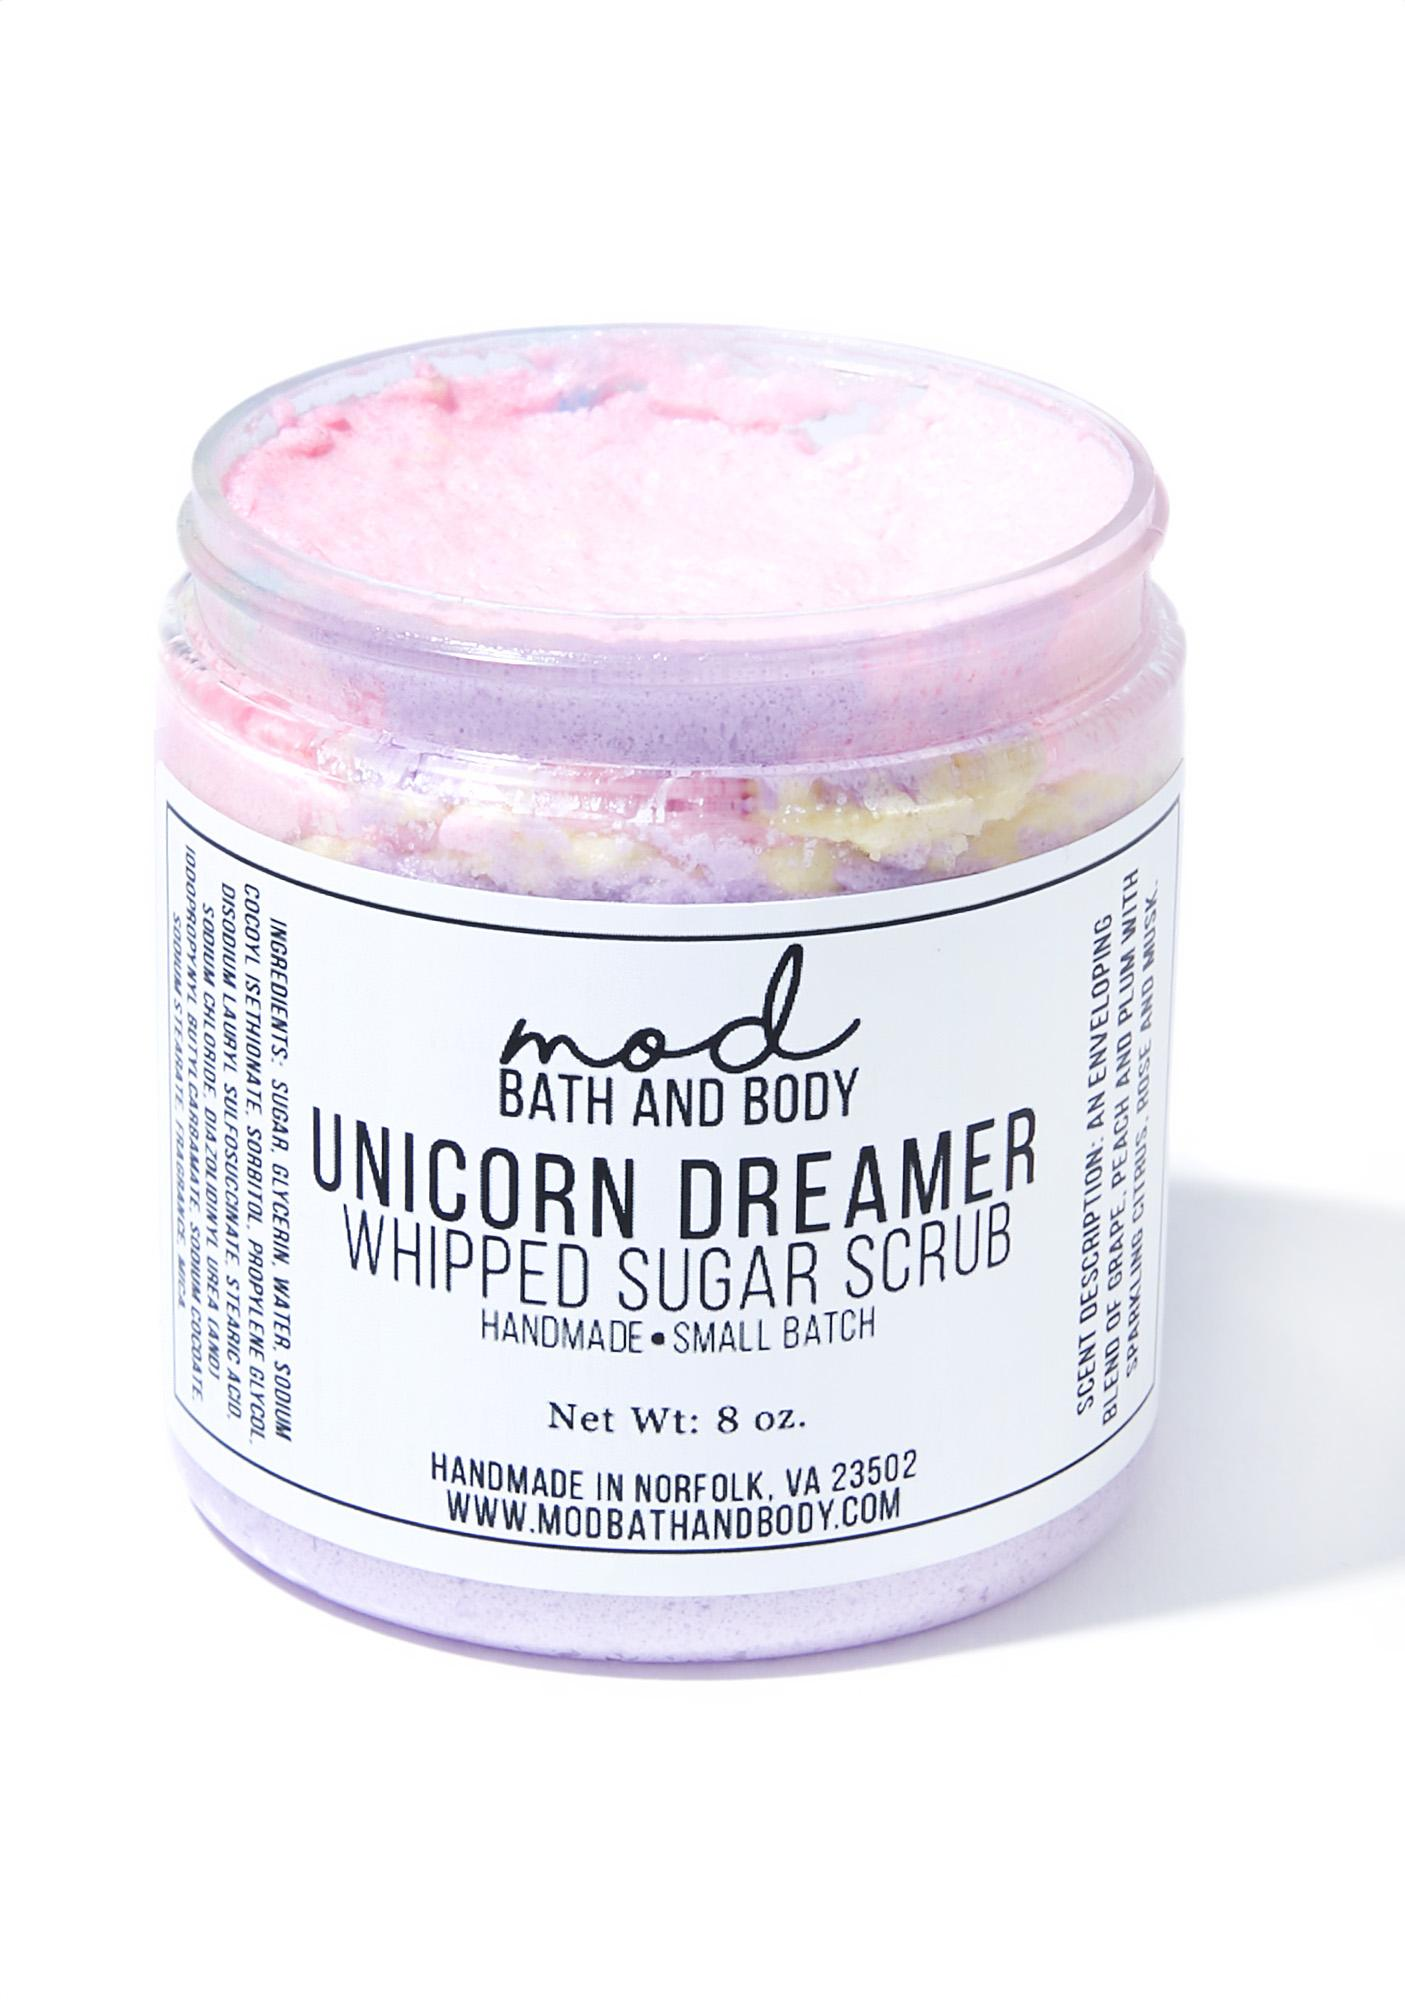 Mod Bath and Body Unicorn Dreamer Whipped Sugar Scrub